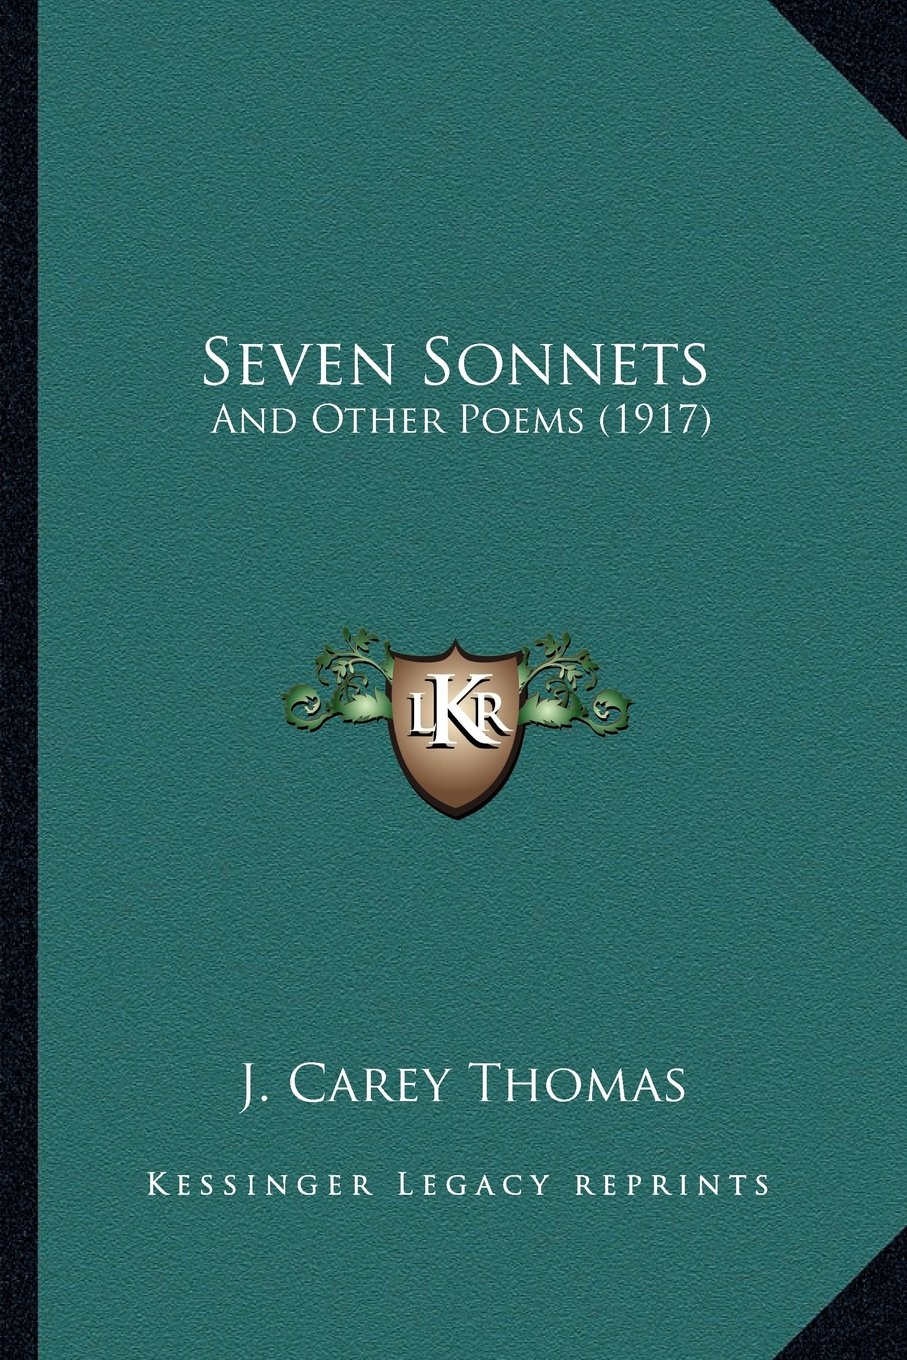 Seven Sonnets: And Other Poems (1917) pdf